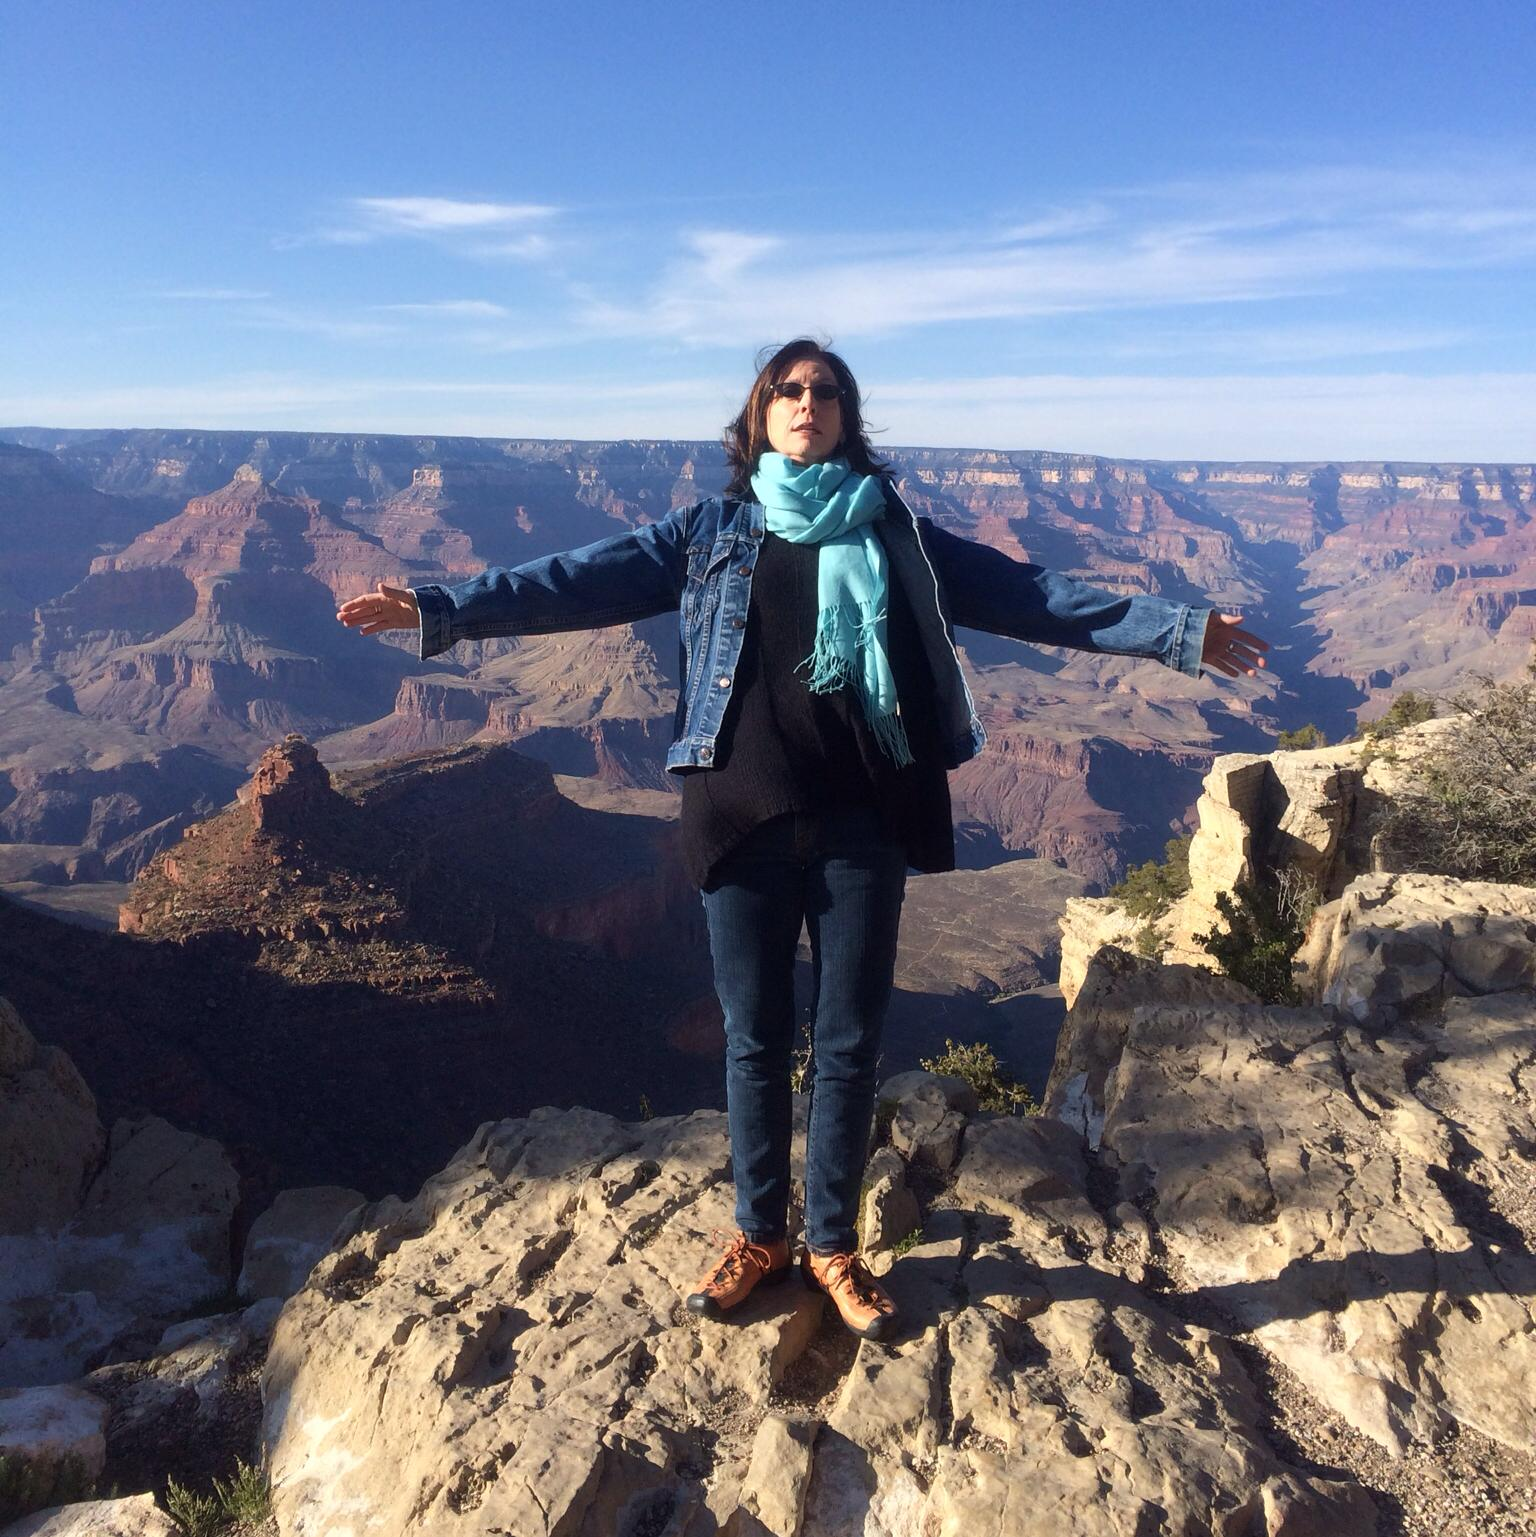 Katie McFadzen on vacation at Grand Canyon National Park.